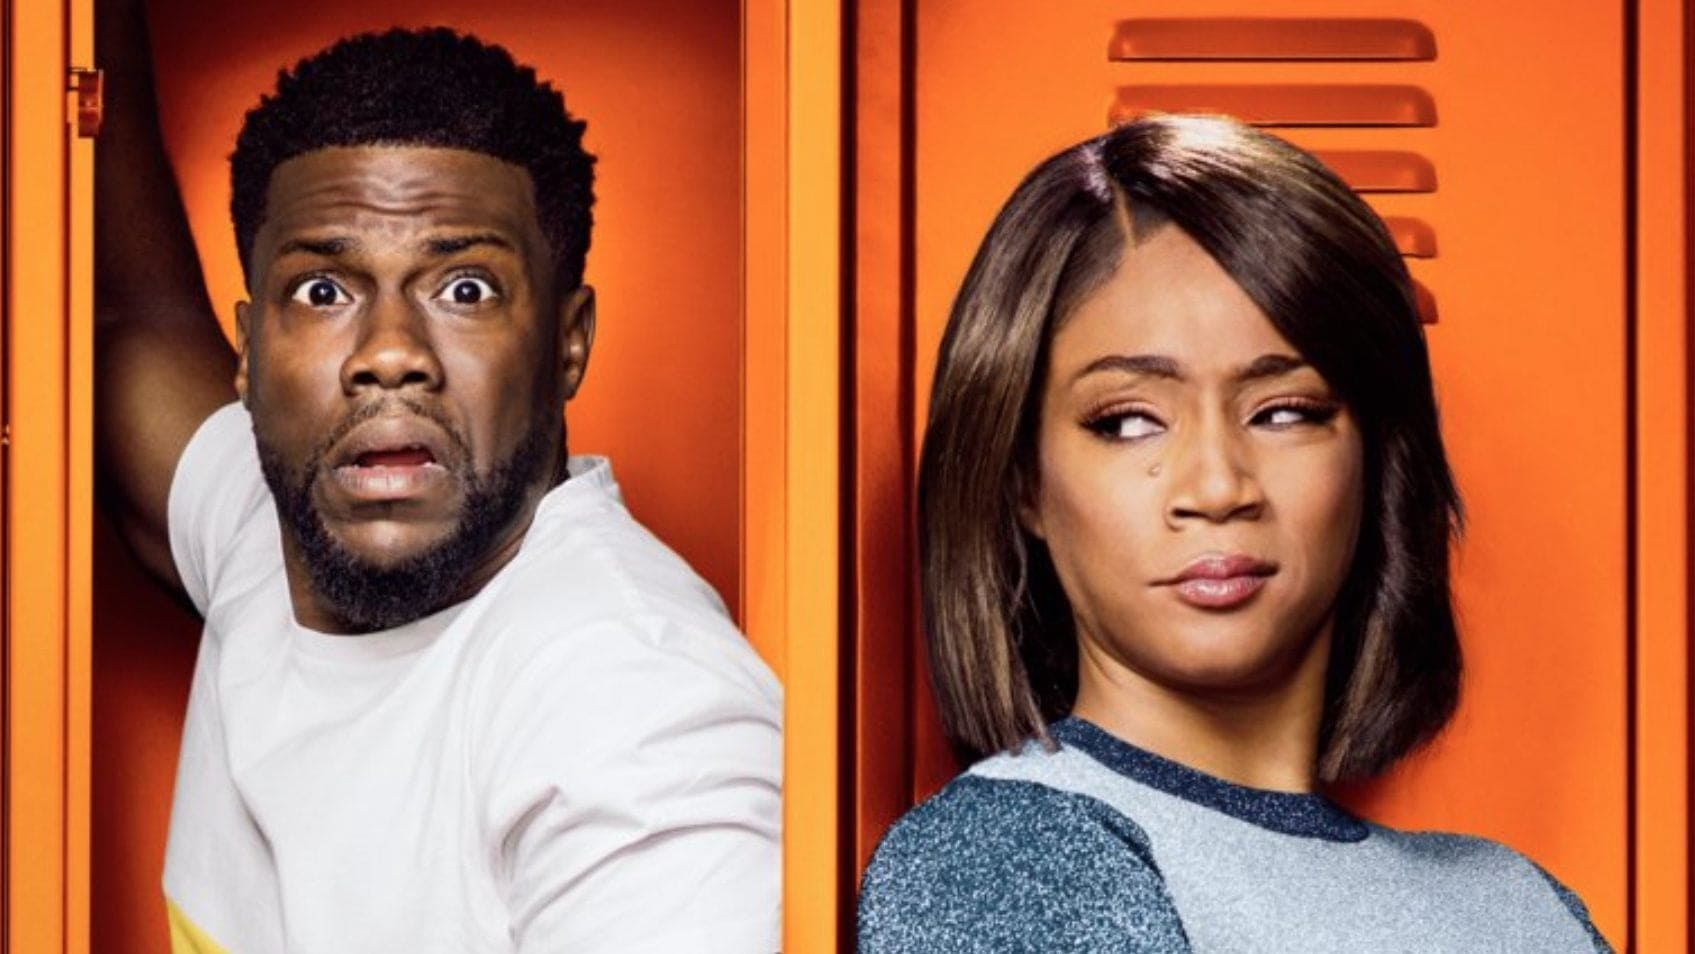 Kevin Hart and Tiffany Haddish star in first trailer for Night School